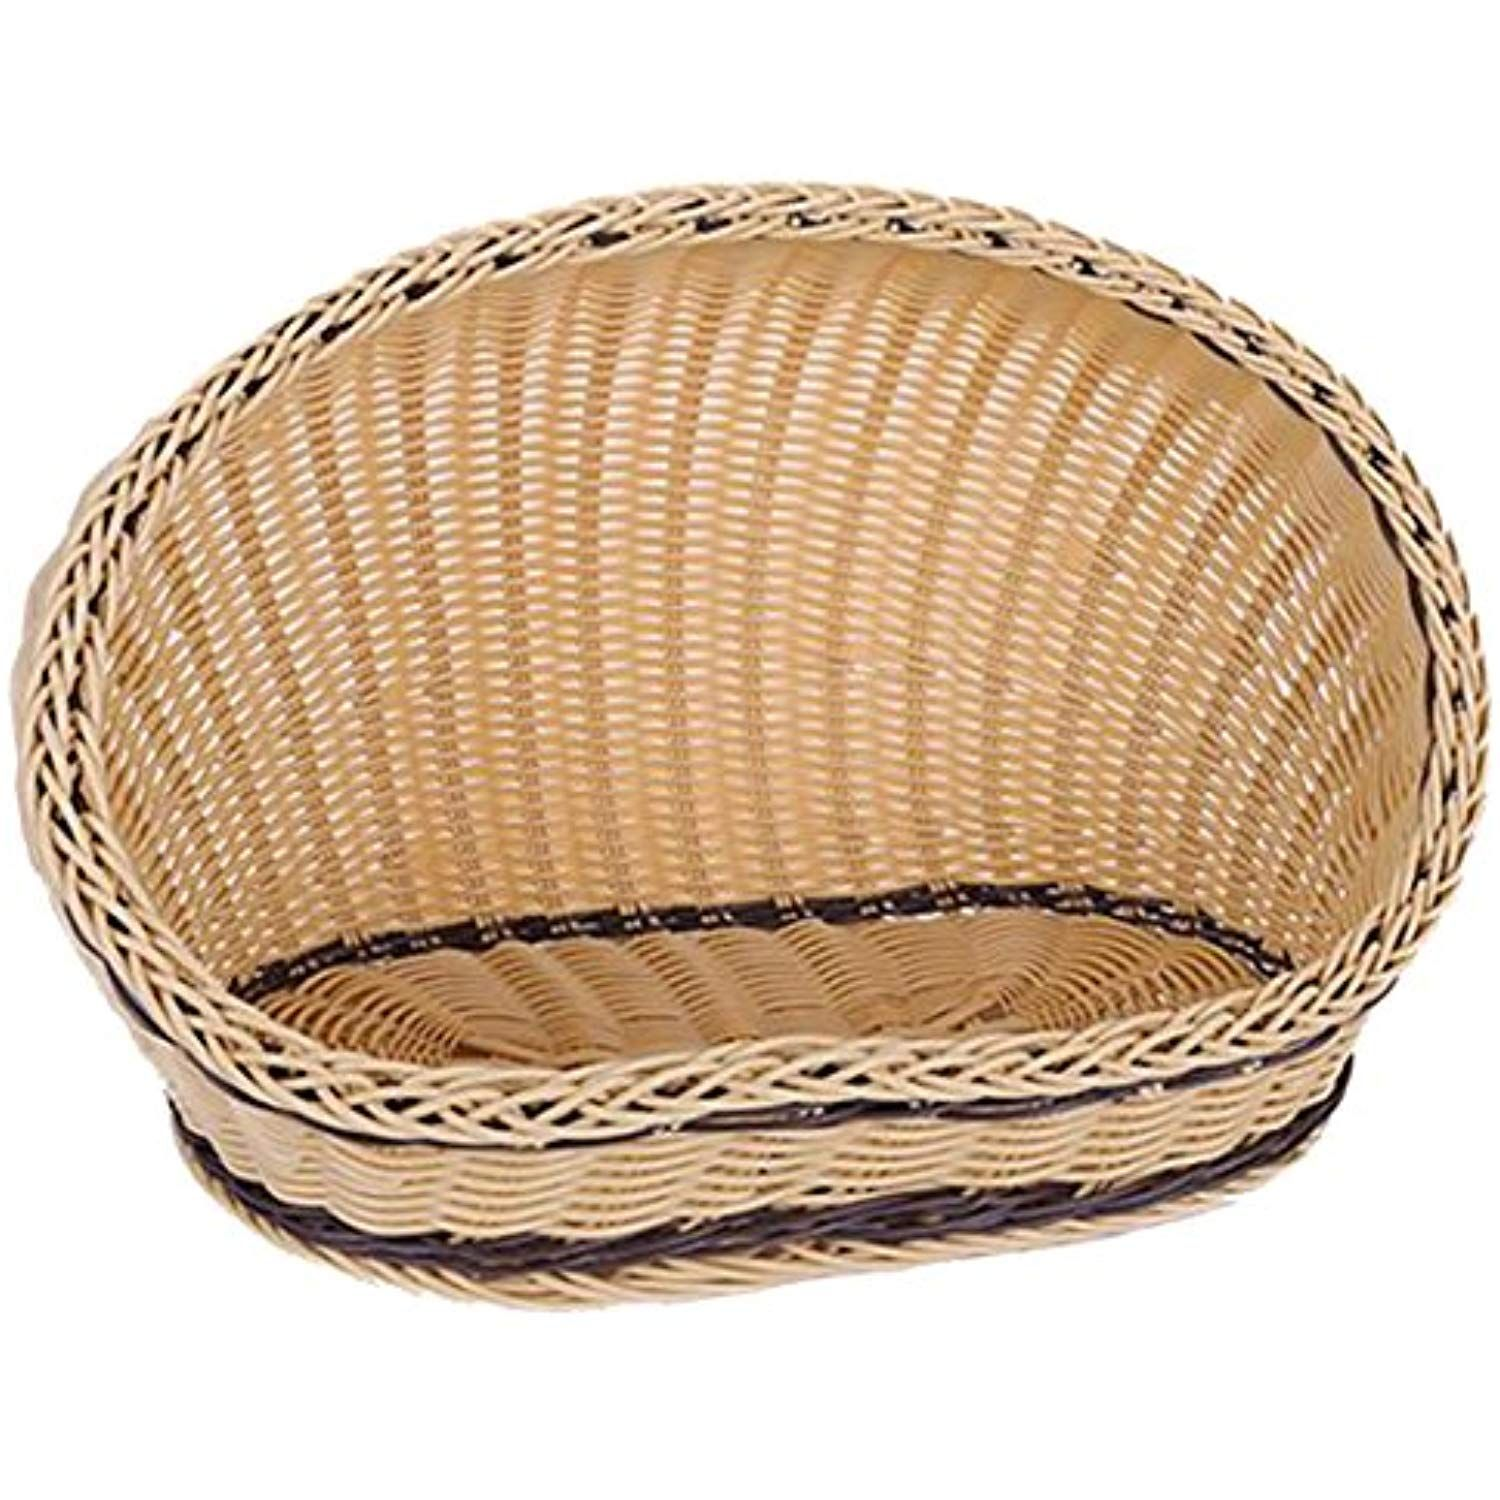 Osave Summer Doghouse Pet Bed Bamboo Mat Pet Dog Cat Bed Rattan Pets Bed M Beige Be Sure To Check Out This Awesome Product Dog Houses Cat Bed Pet Bed